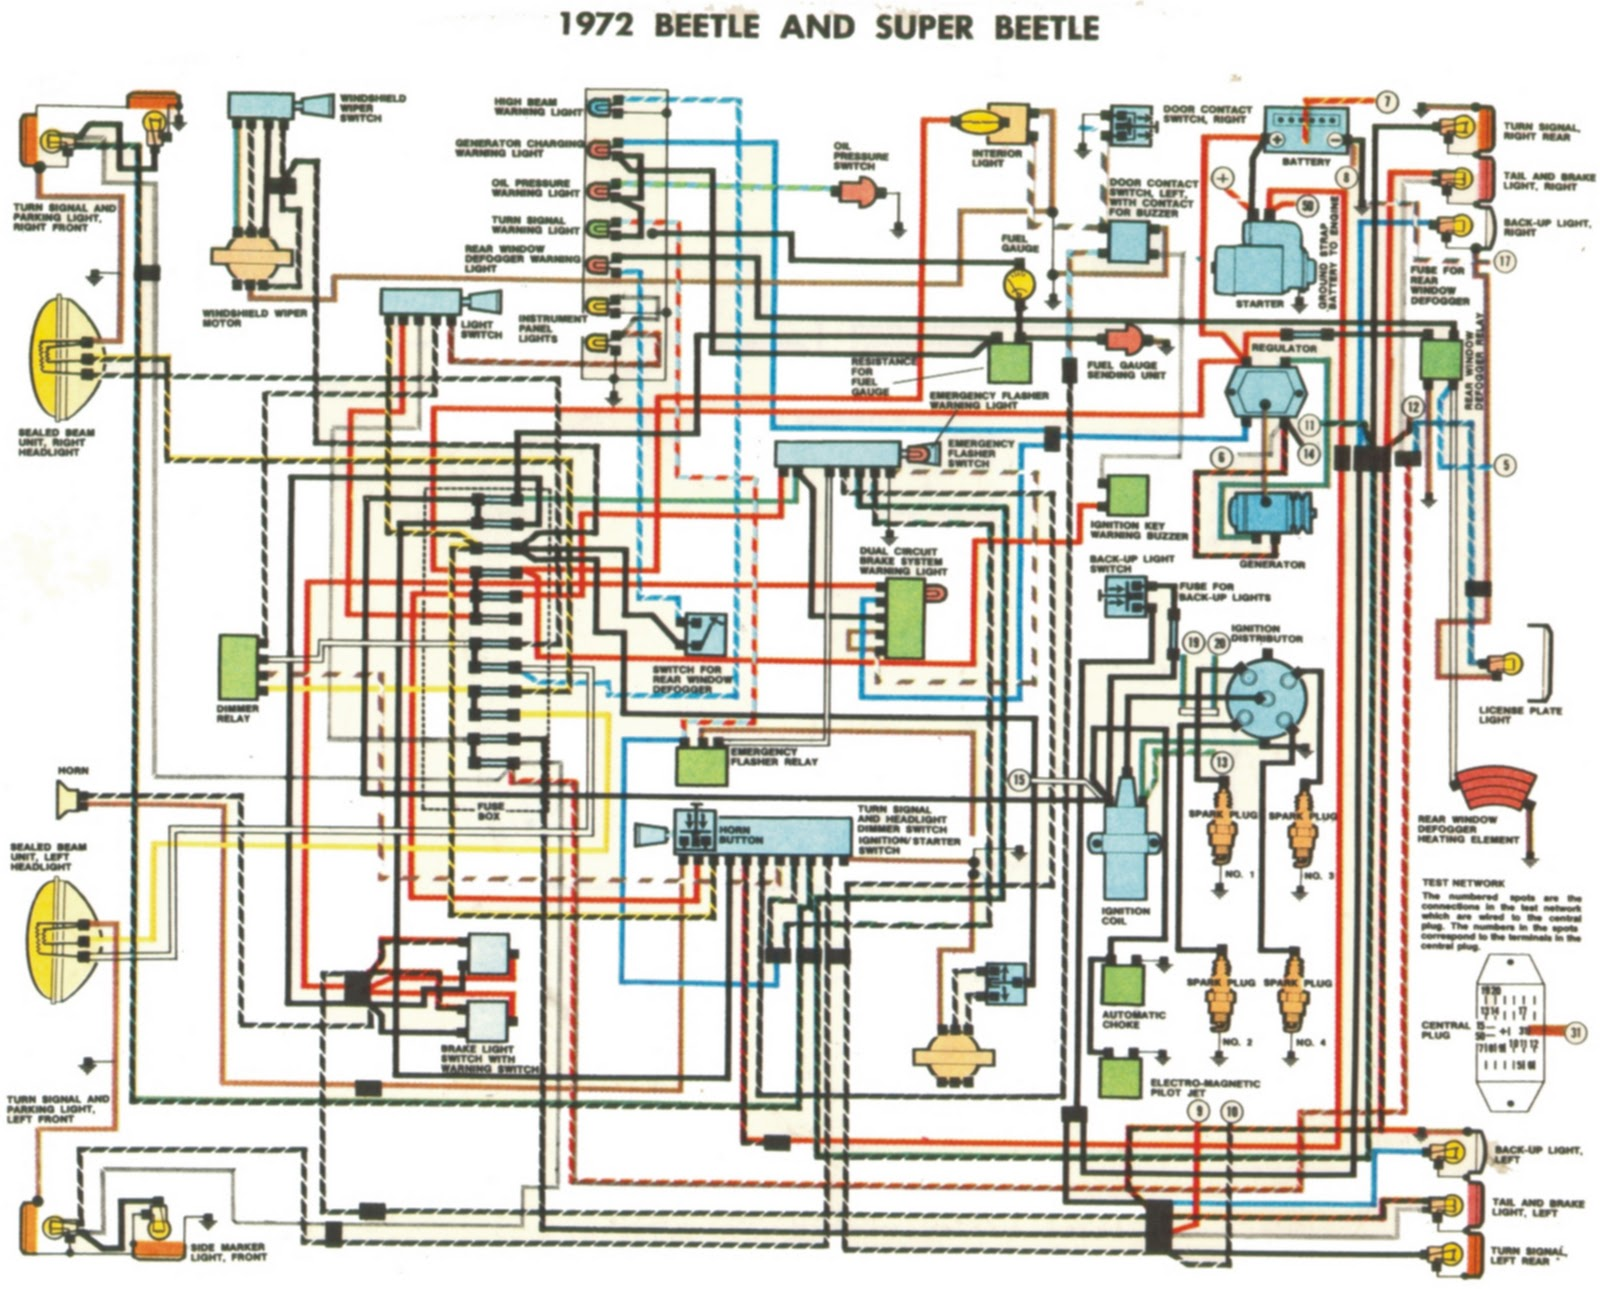 1972 beetle and super beetle wiring diagrams wiring diagram for 1971 vw beetle the wiring diagram wiring diagram for 1972 vw beetle at sewacar.co